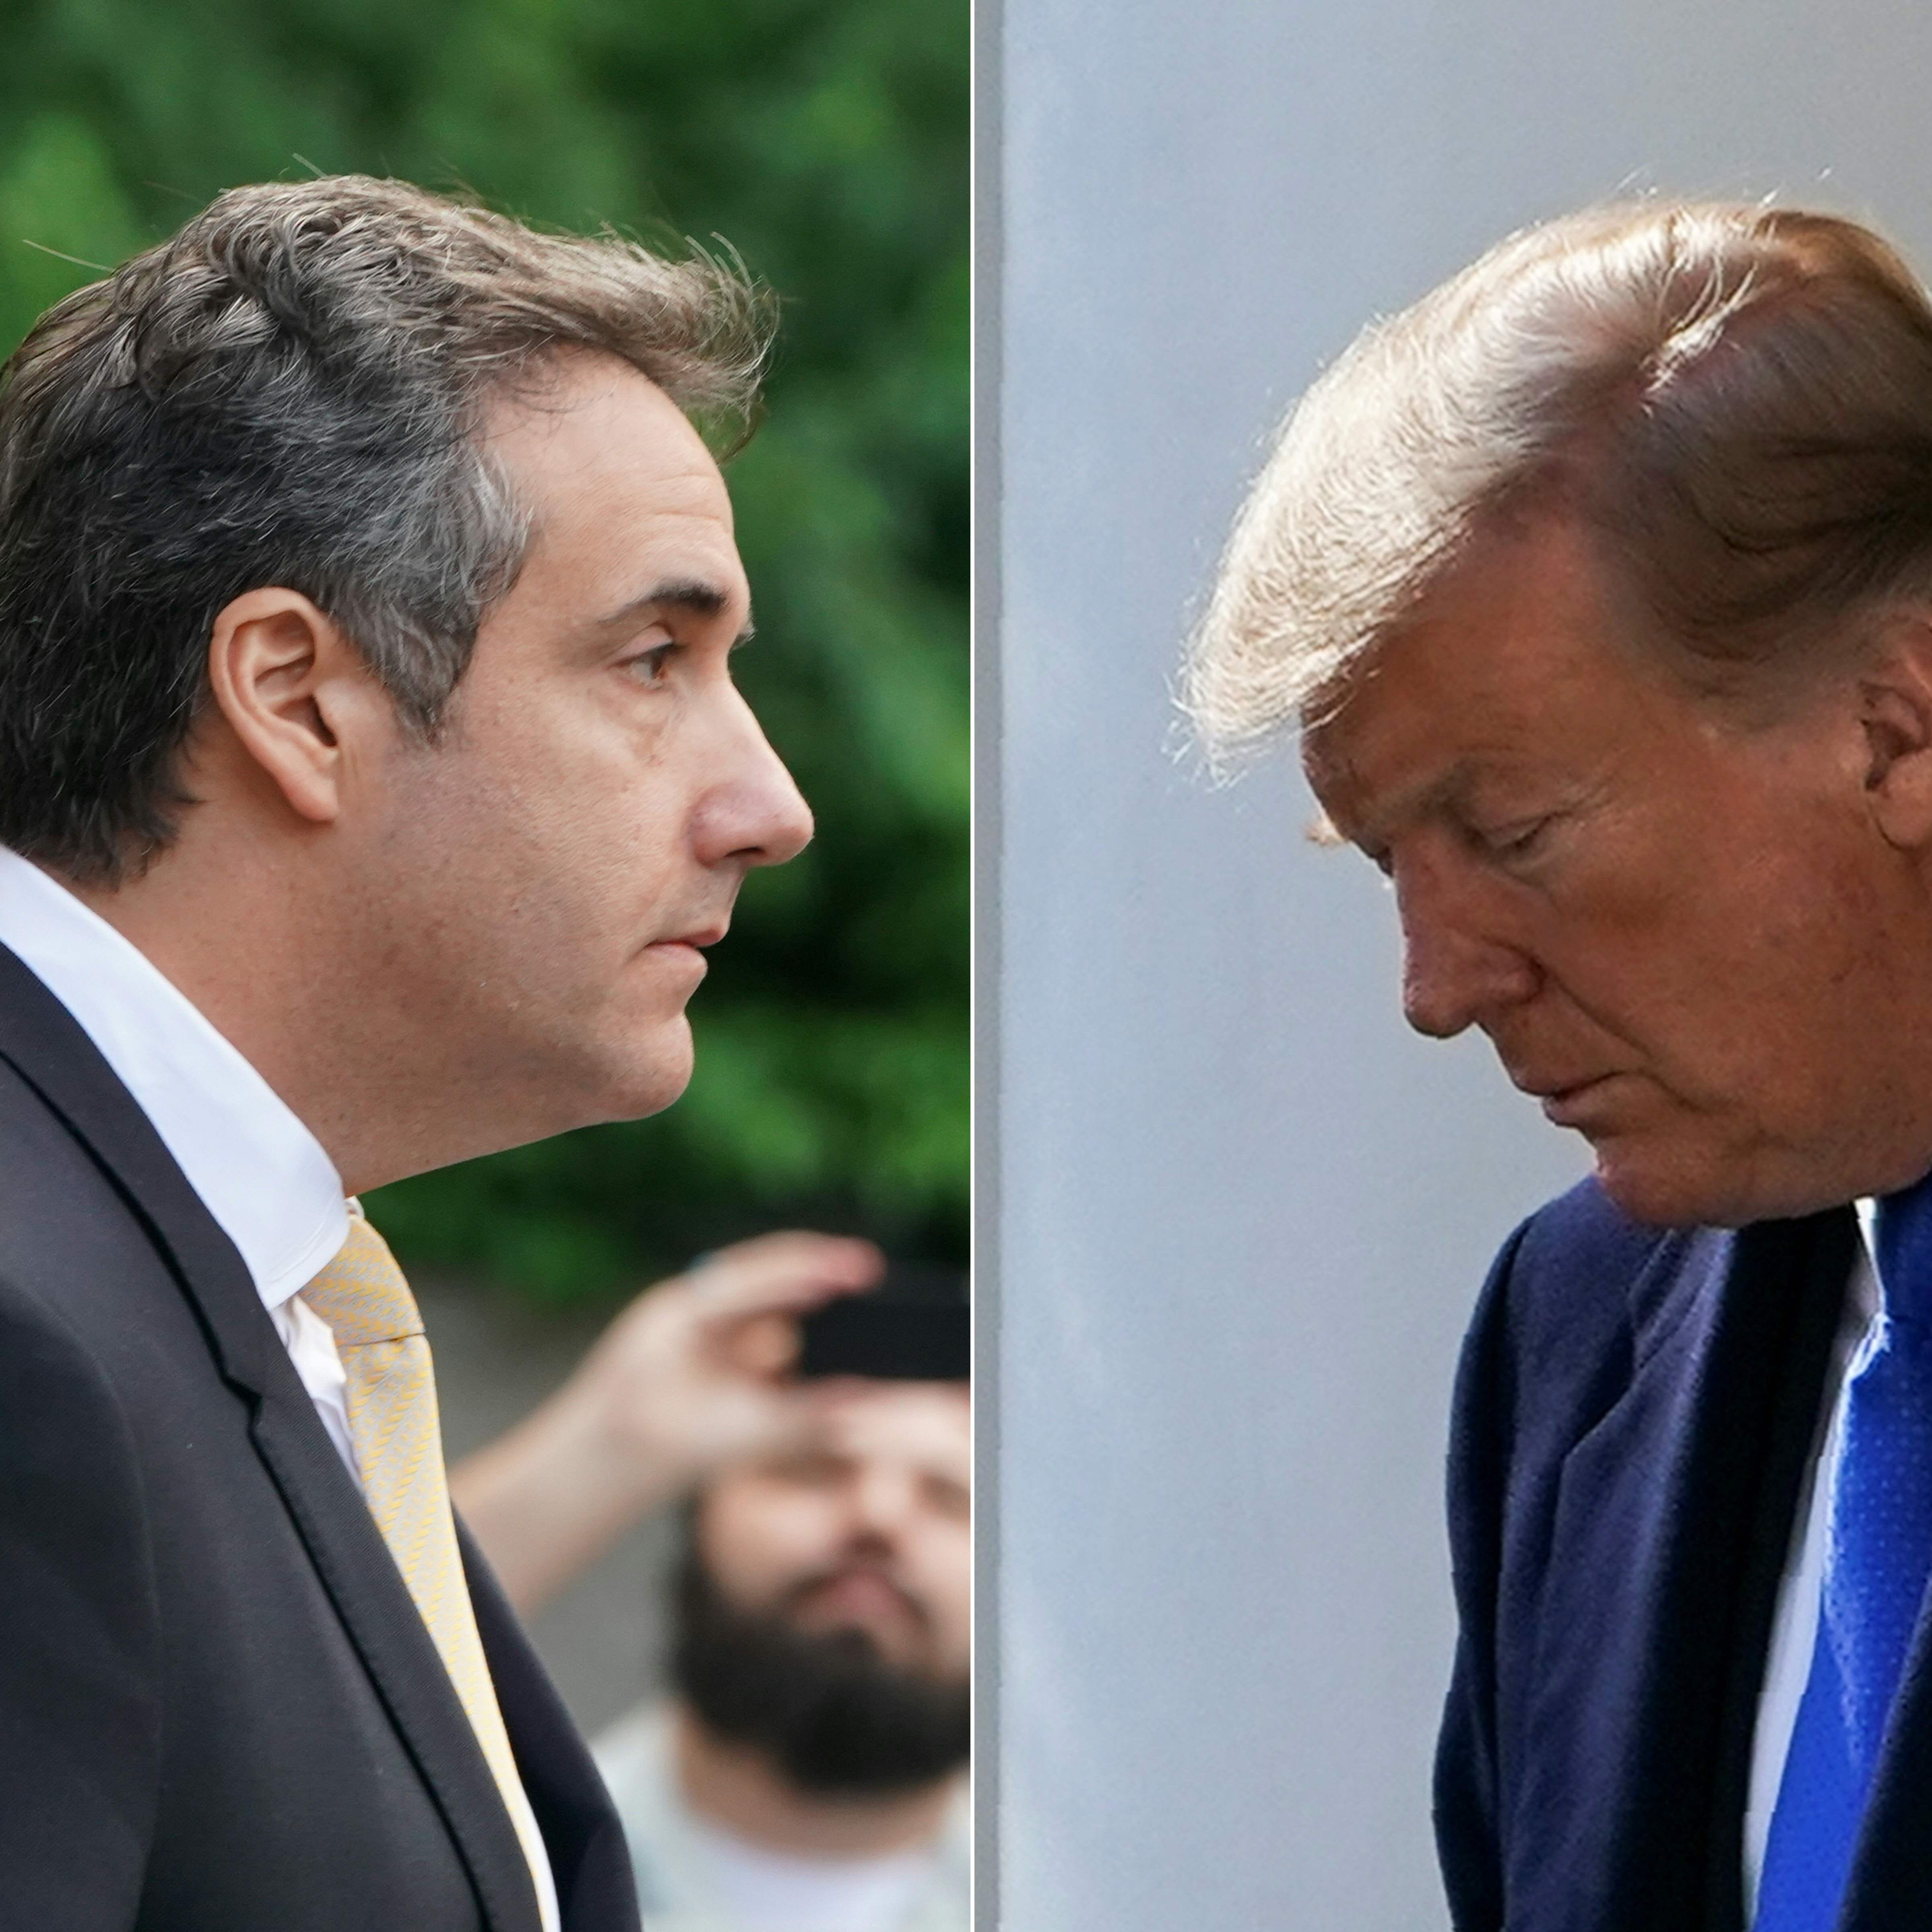 One liar going to jail, another living in White House: Letter